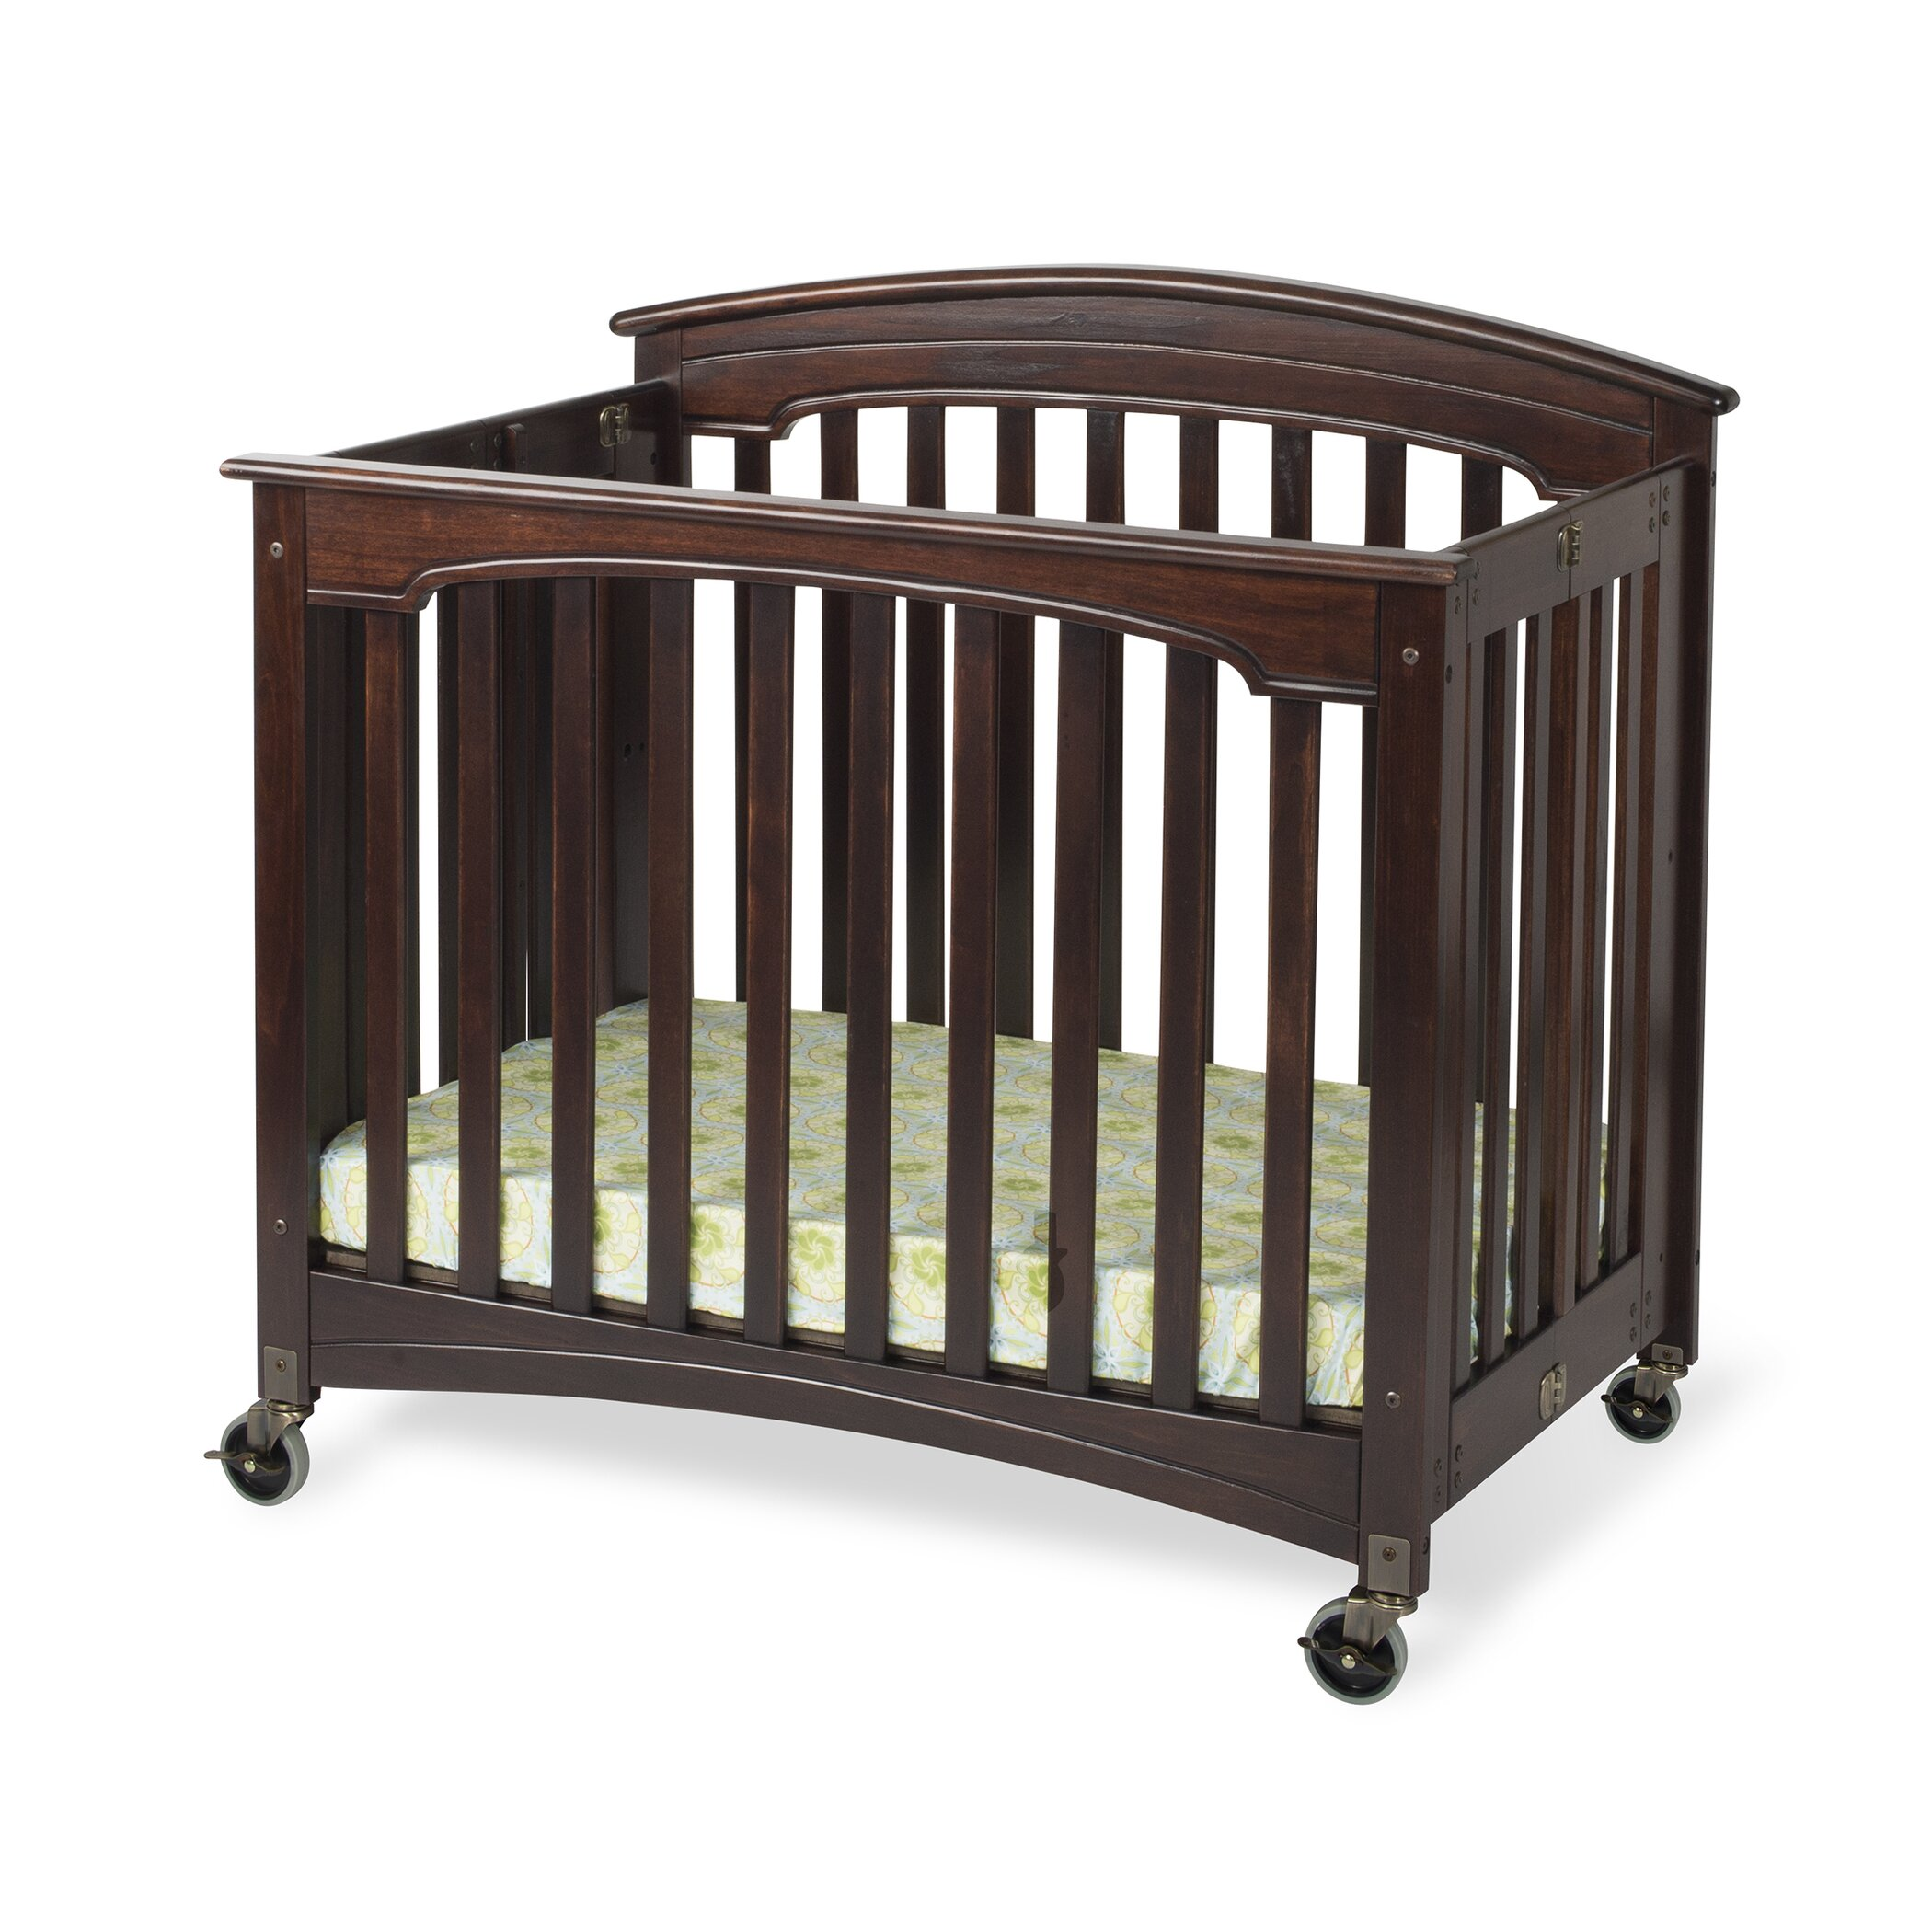 Ellery round crib for sale - Royale Fixed Side Folding Compact Convertible Crib With Mattress